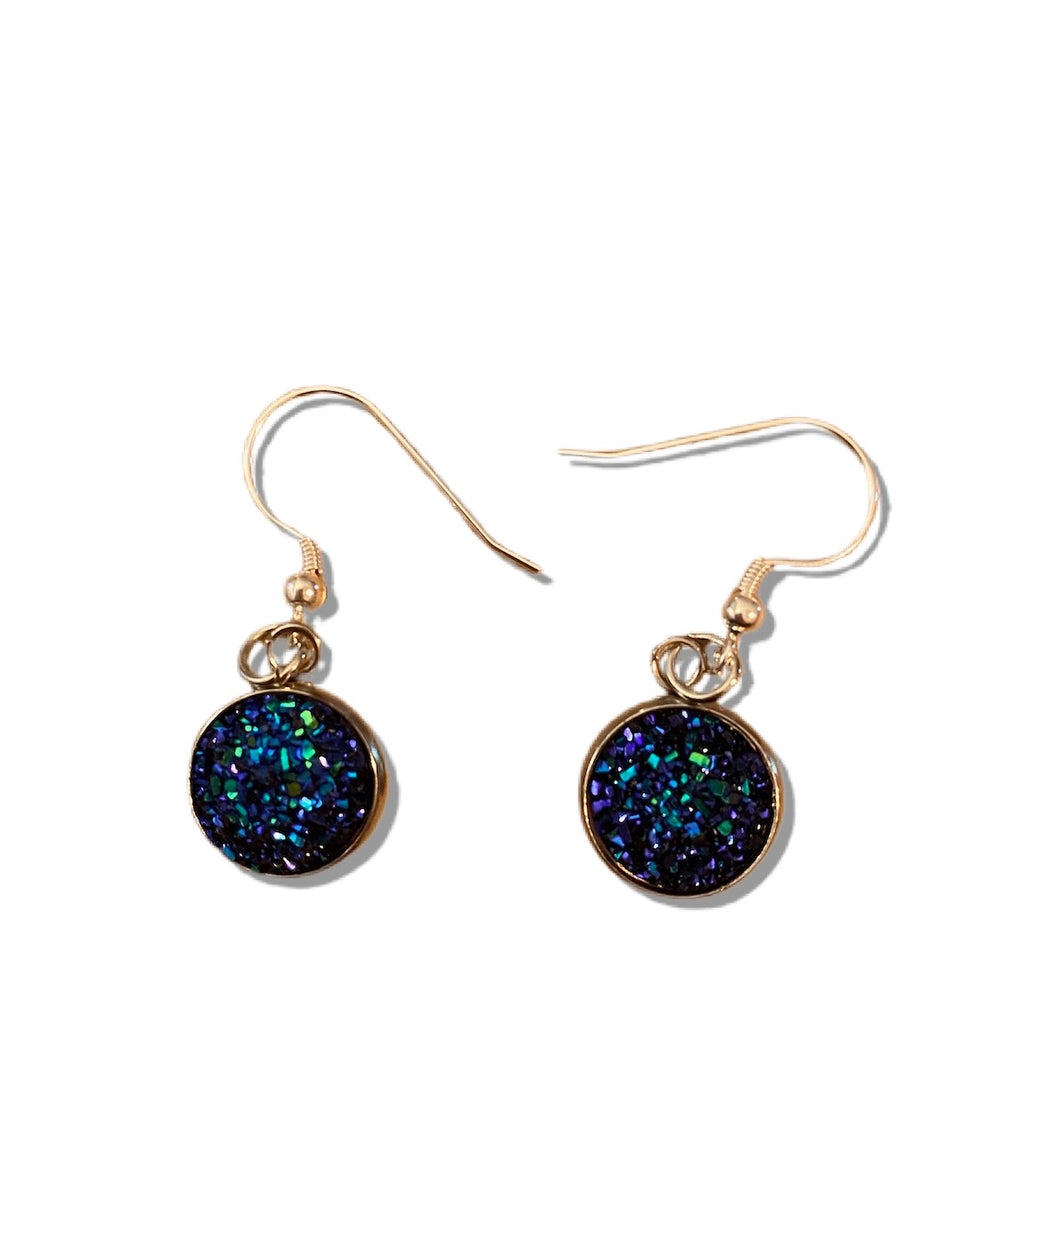 Druzy Drop Earrings - Dark Blue